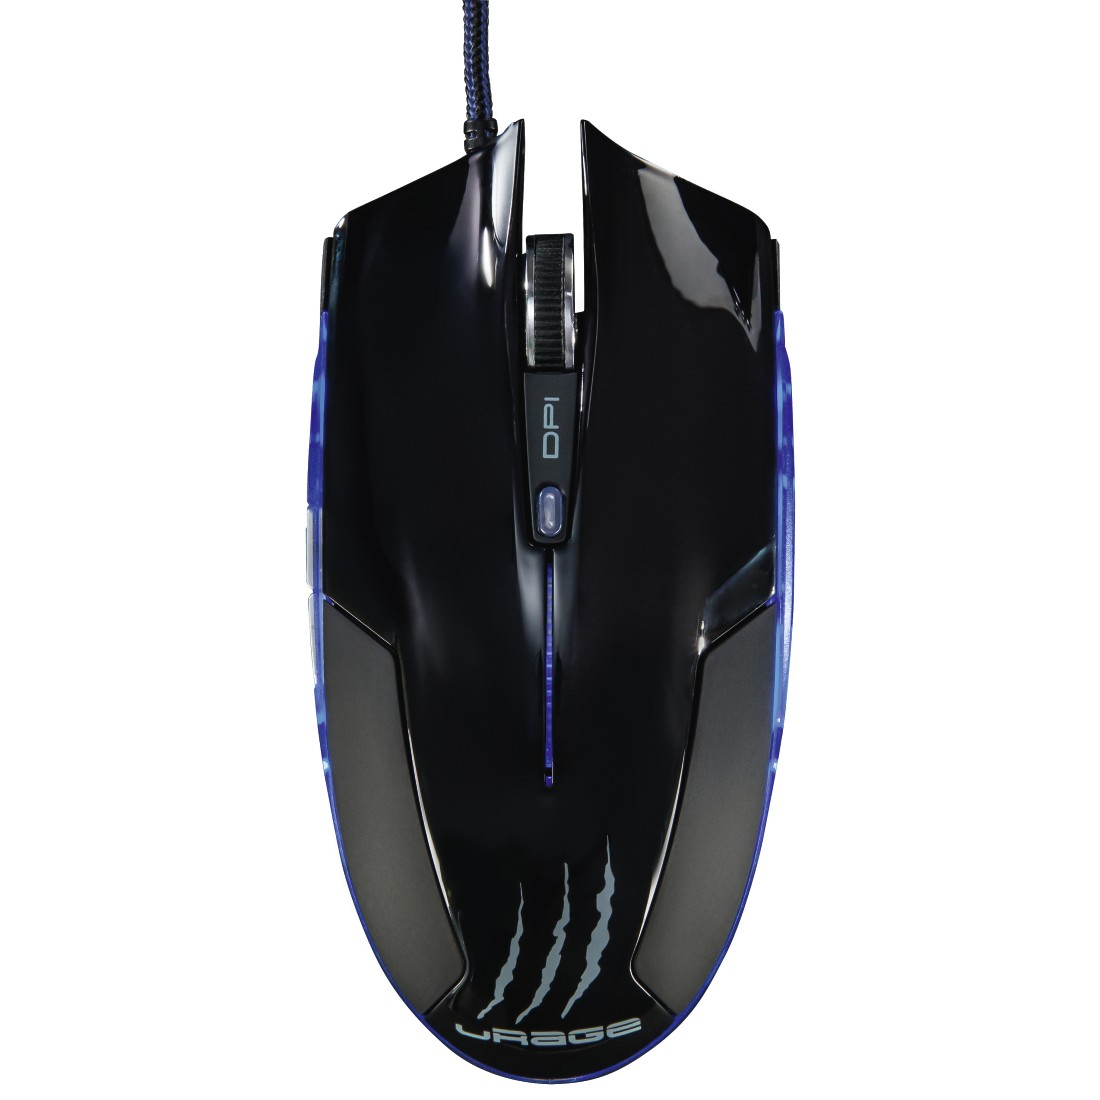 abx2 High-Res Image 2 - Hama, uRage Gaming Mouse